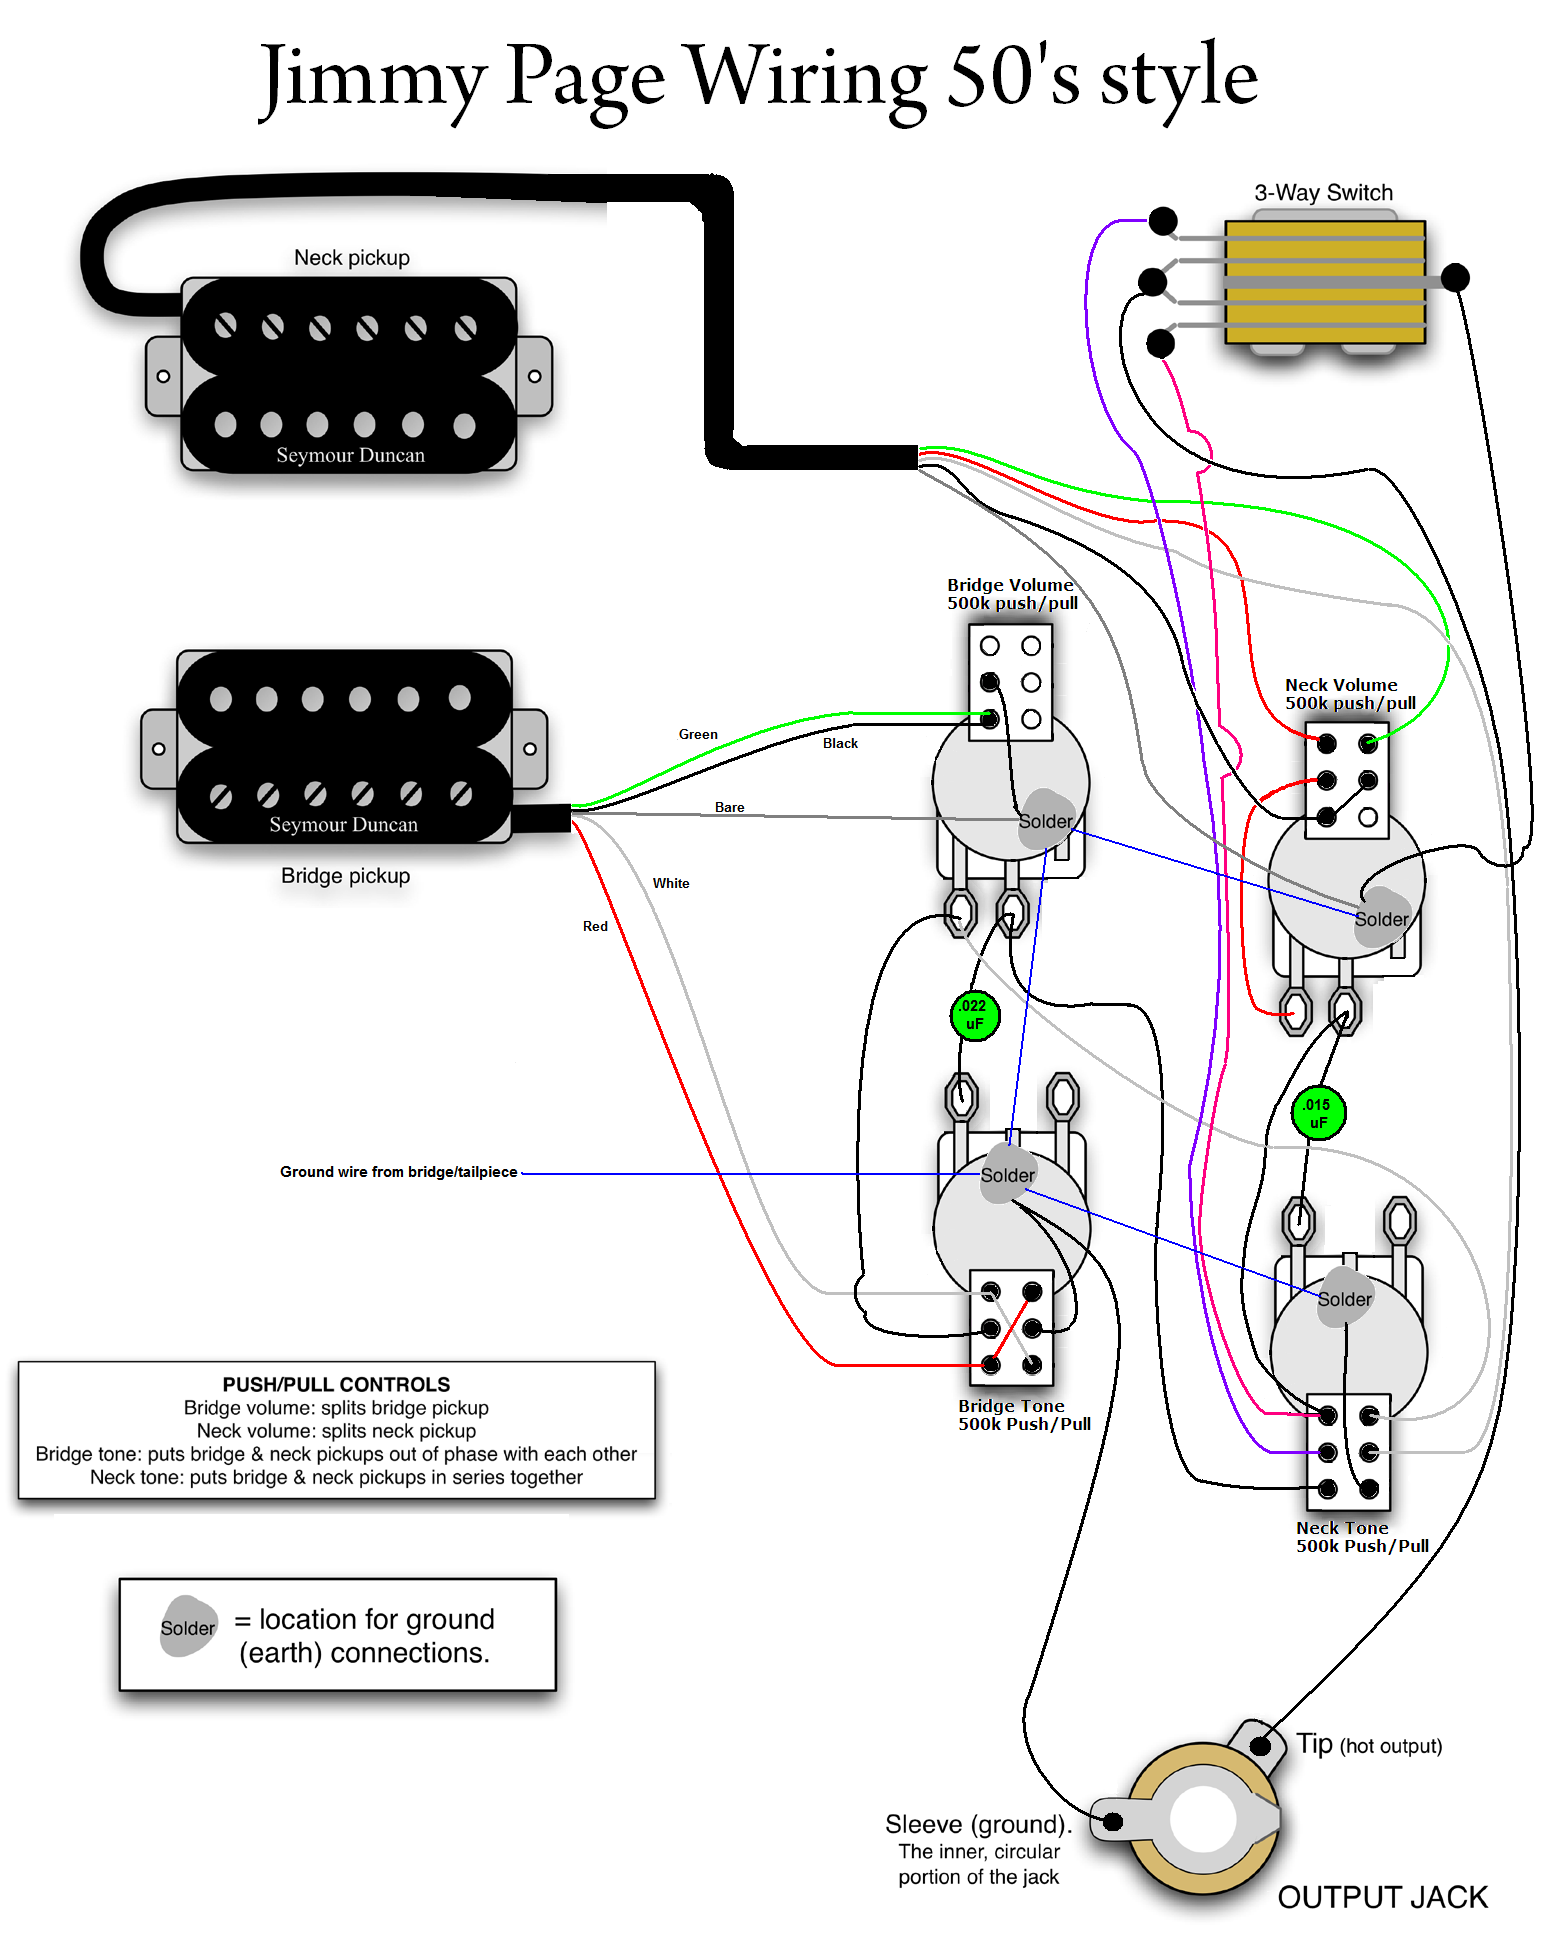 Jimmy Page Guitar Wiring Diagram Electronic Wiring Diagrams Gibson Jimmy  Page Wiring Jimmy Page Les Paul Wiring